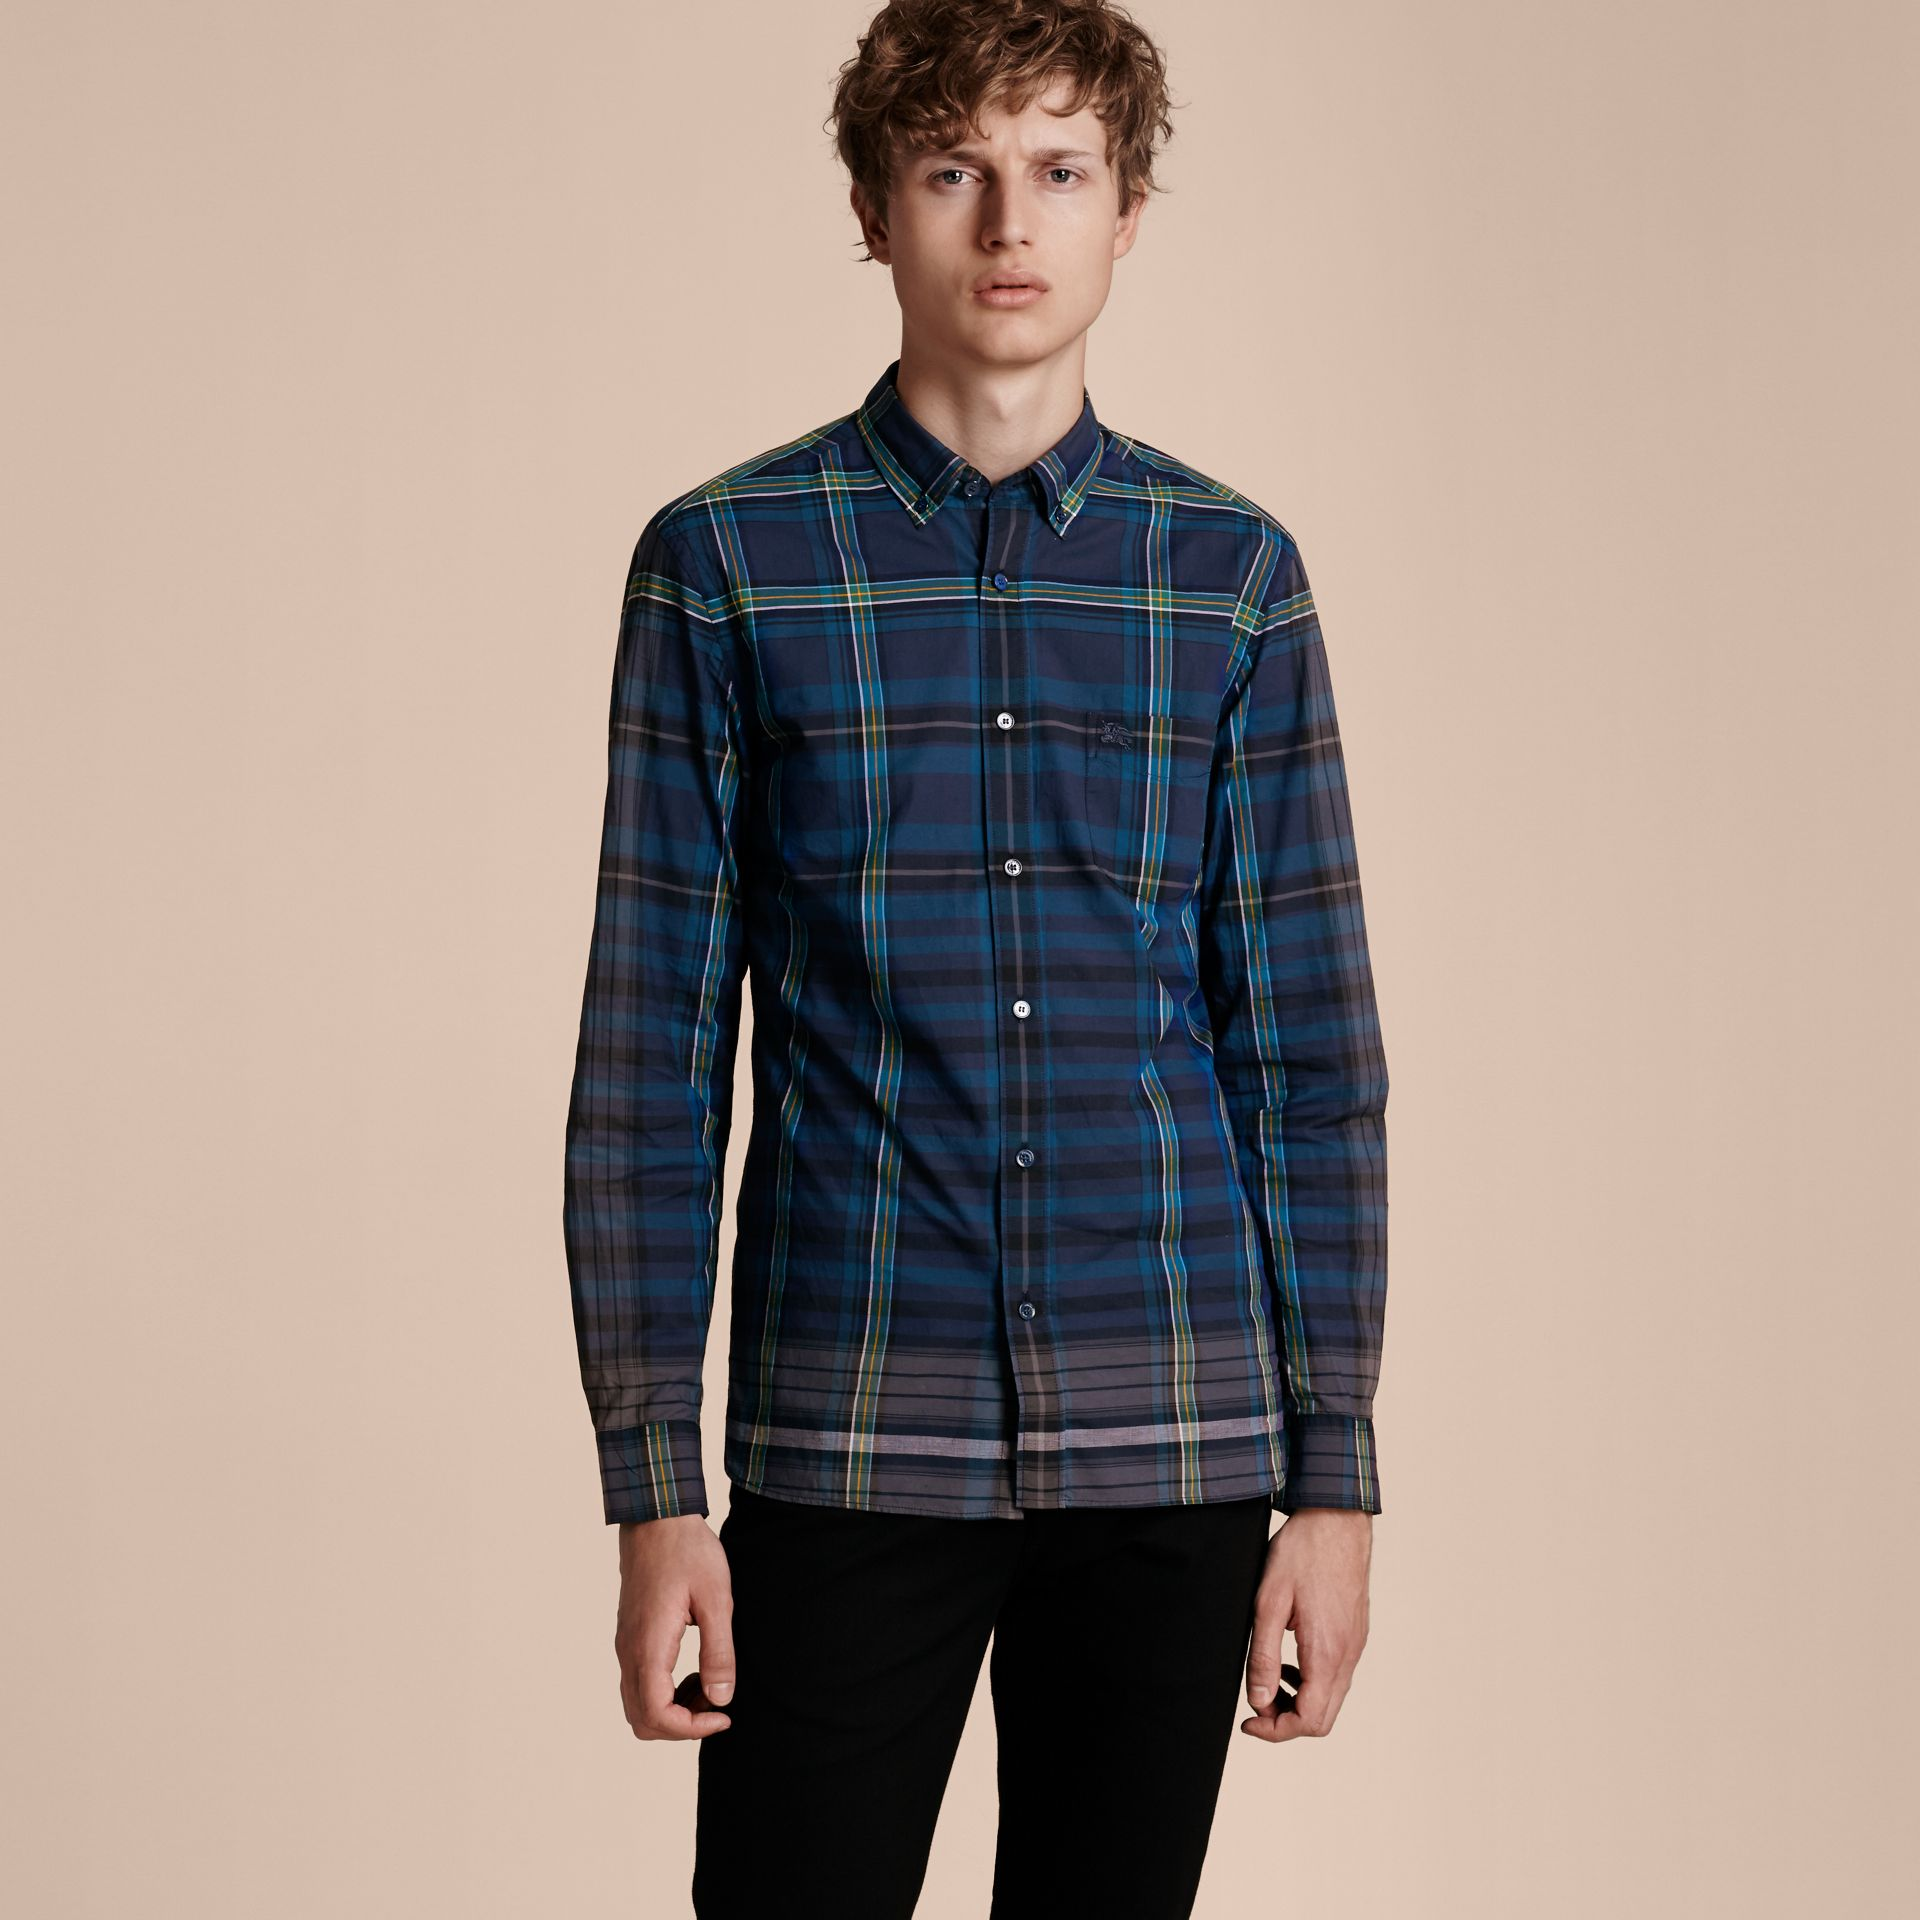 Indigo Button-down Collar Check Cotton Shirt Indigo - gallery image 6